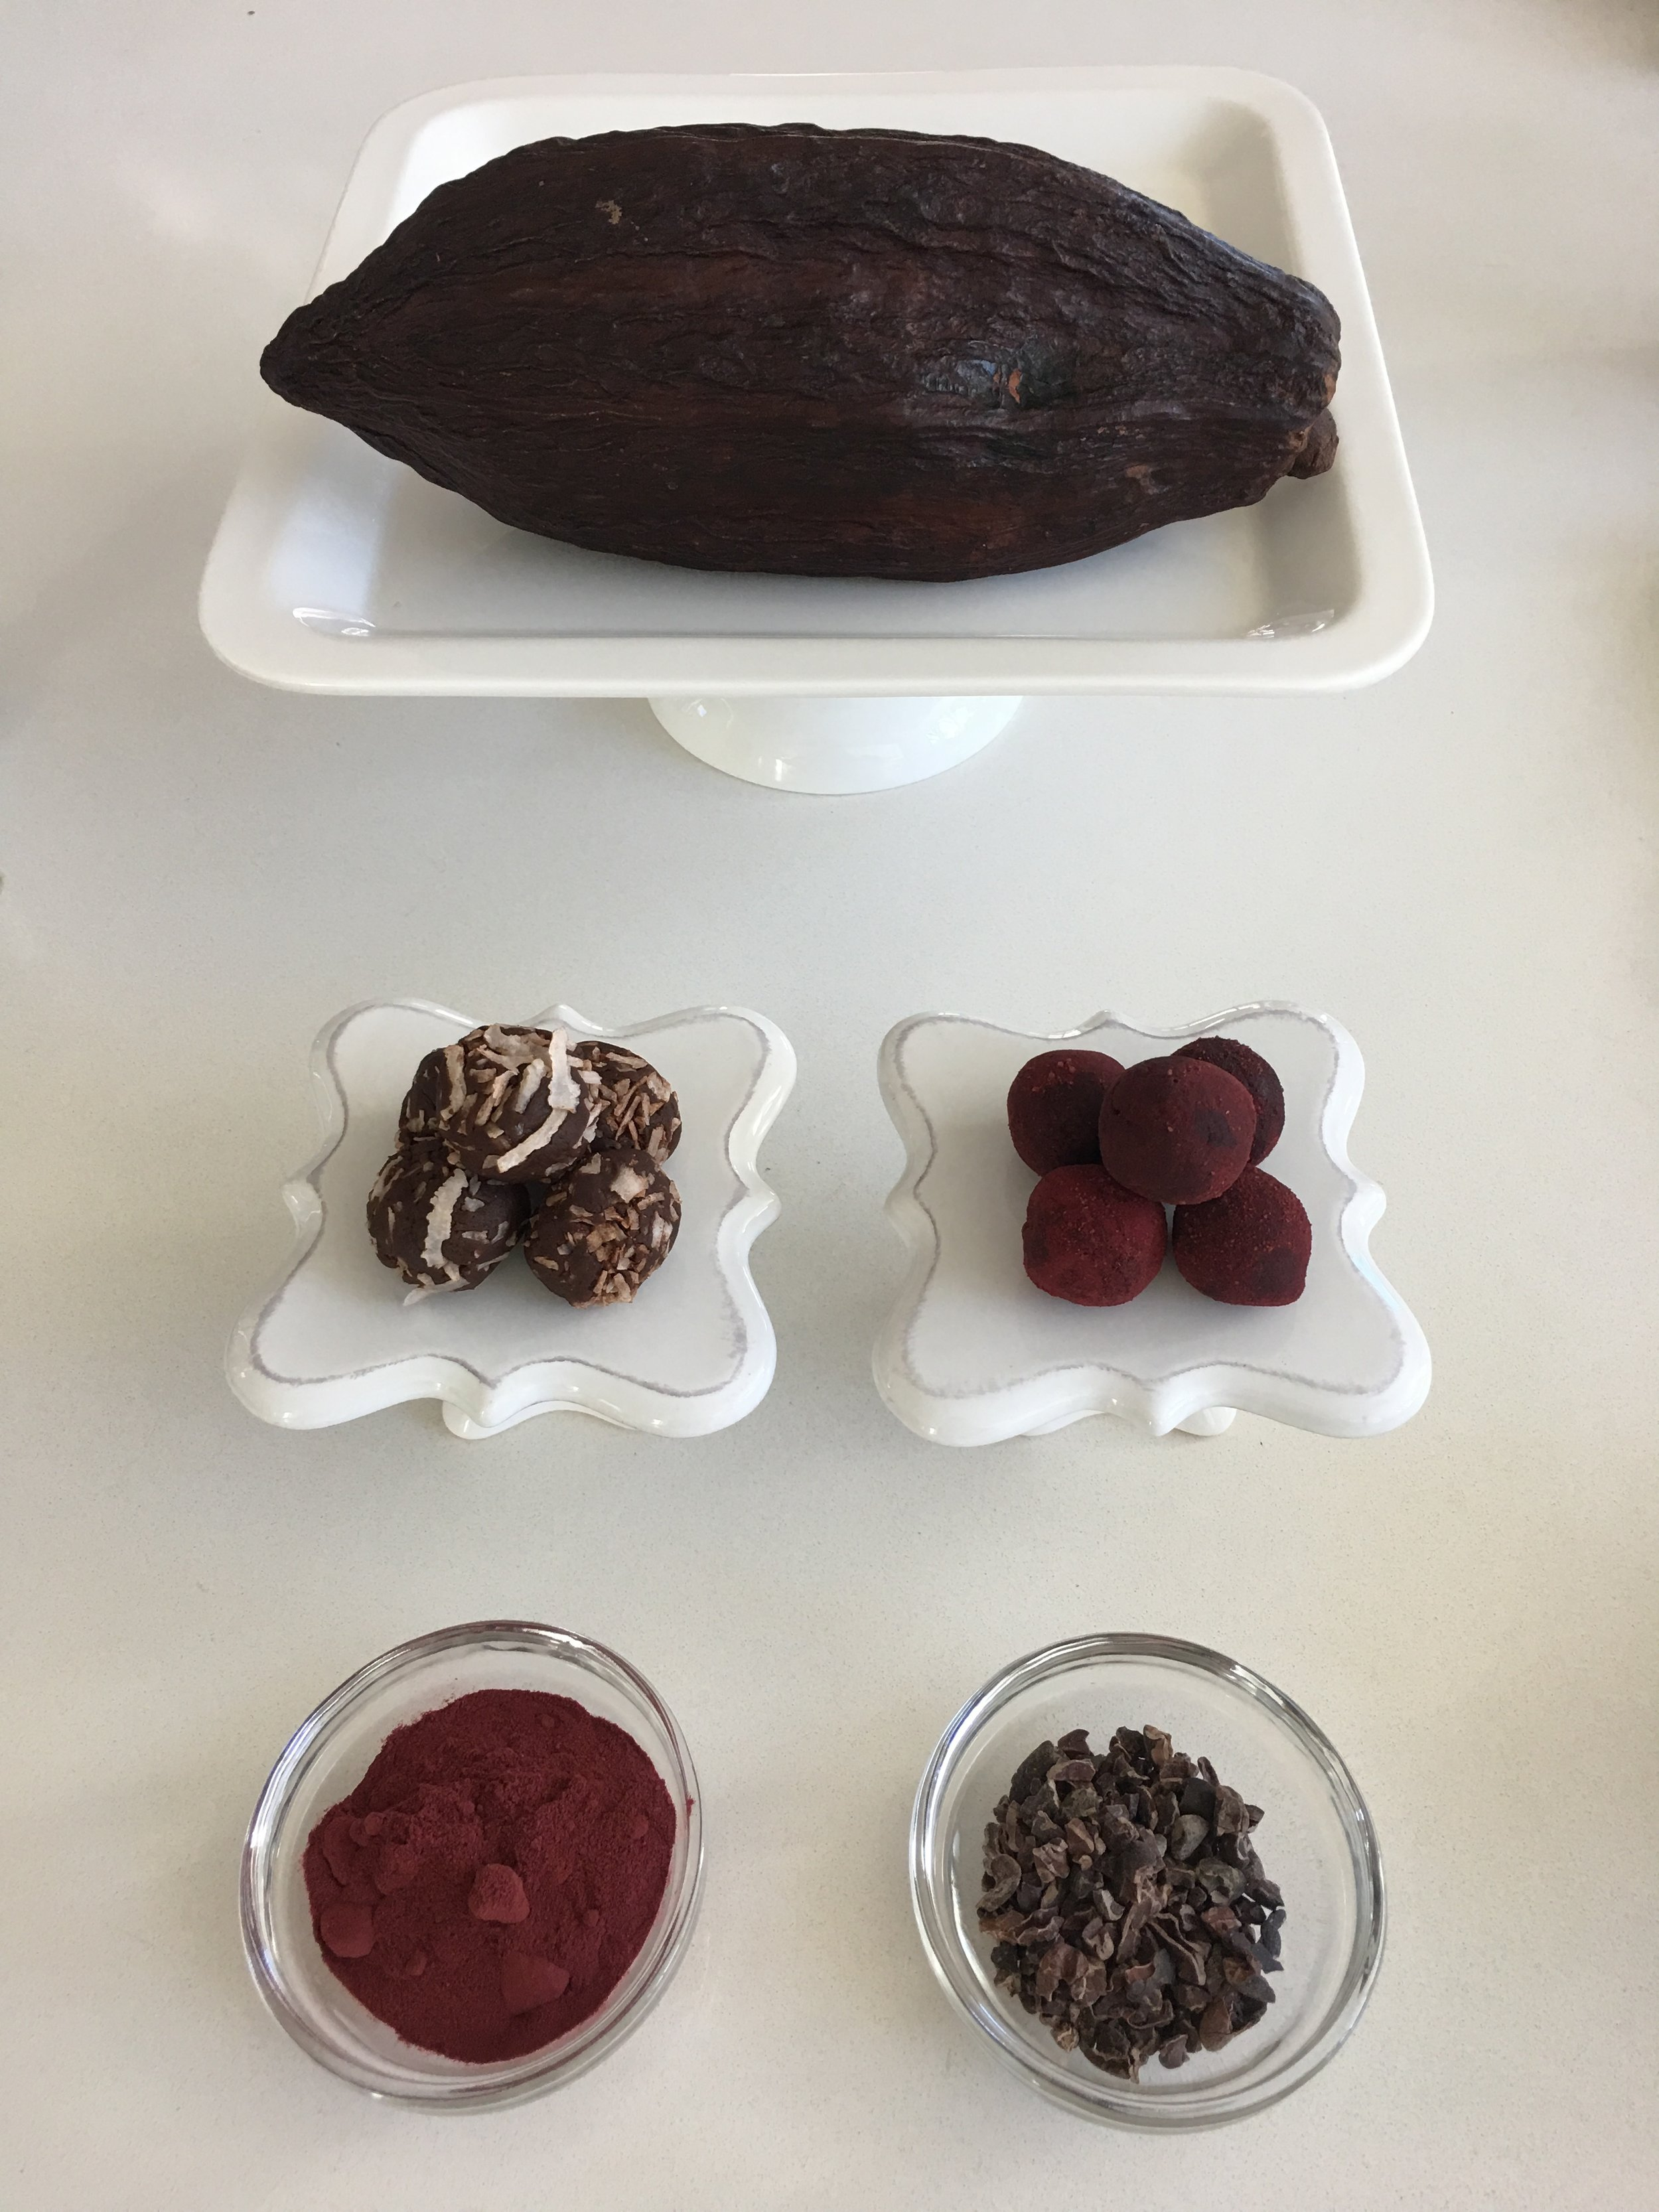 CACAO POD ( top ), Cacao Protein Bites rolled in shredded coconut and beet root powder ( middle ), Beet root powder, Raw cacao nibs ( bottom )